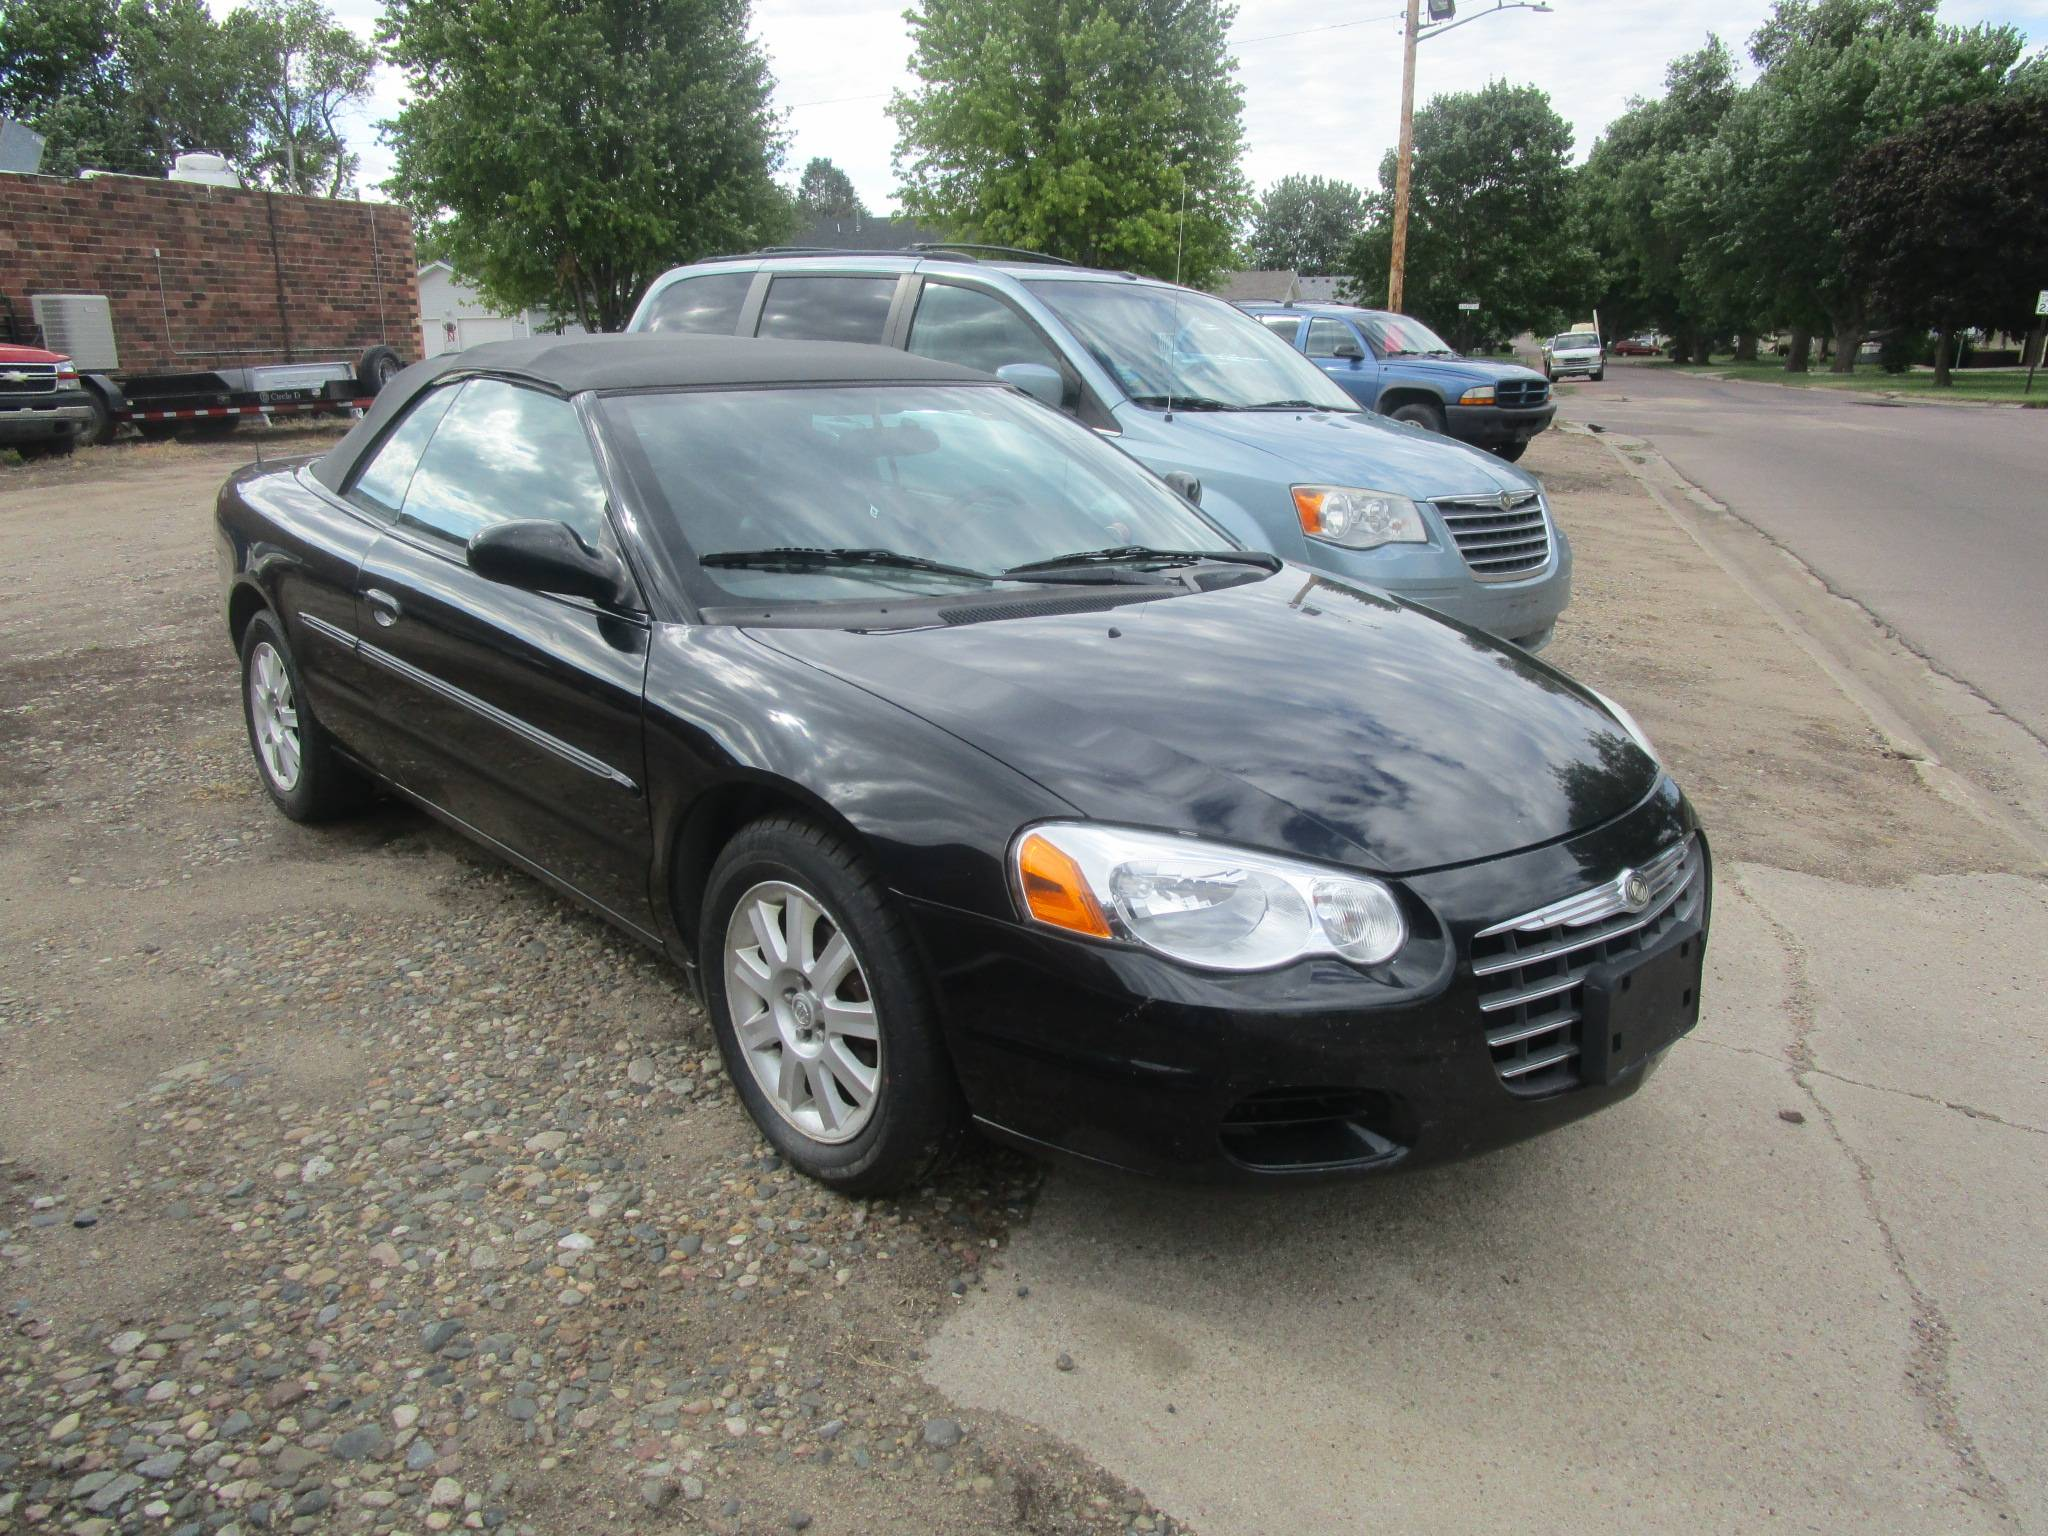 2004 CHRYSLER SEBRING CONVERTIBLE $2,995